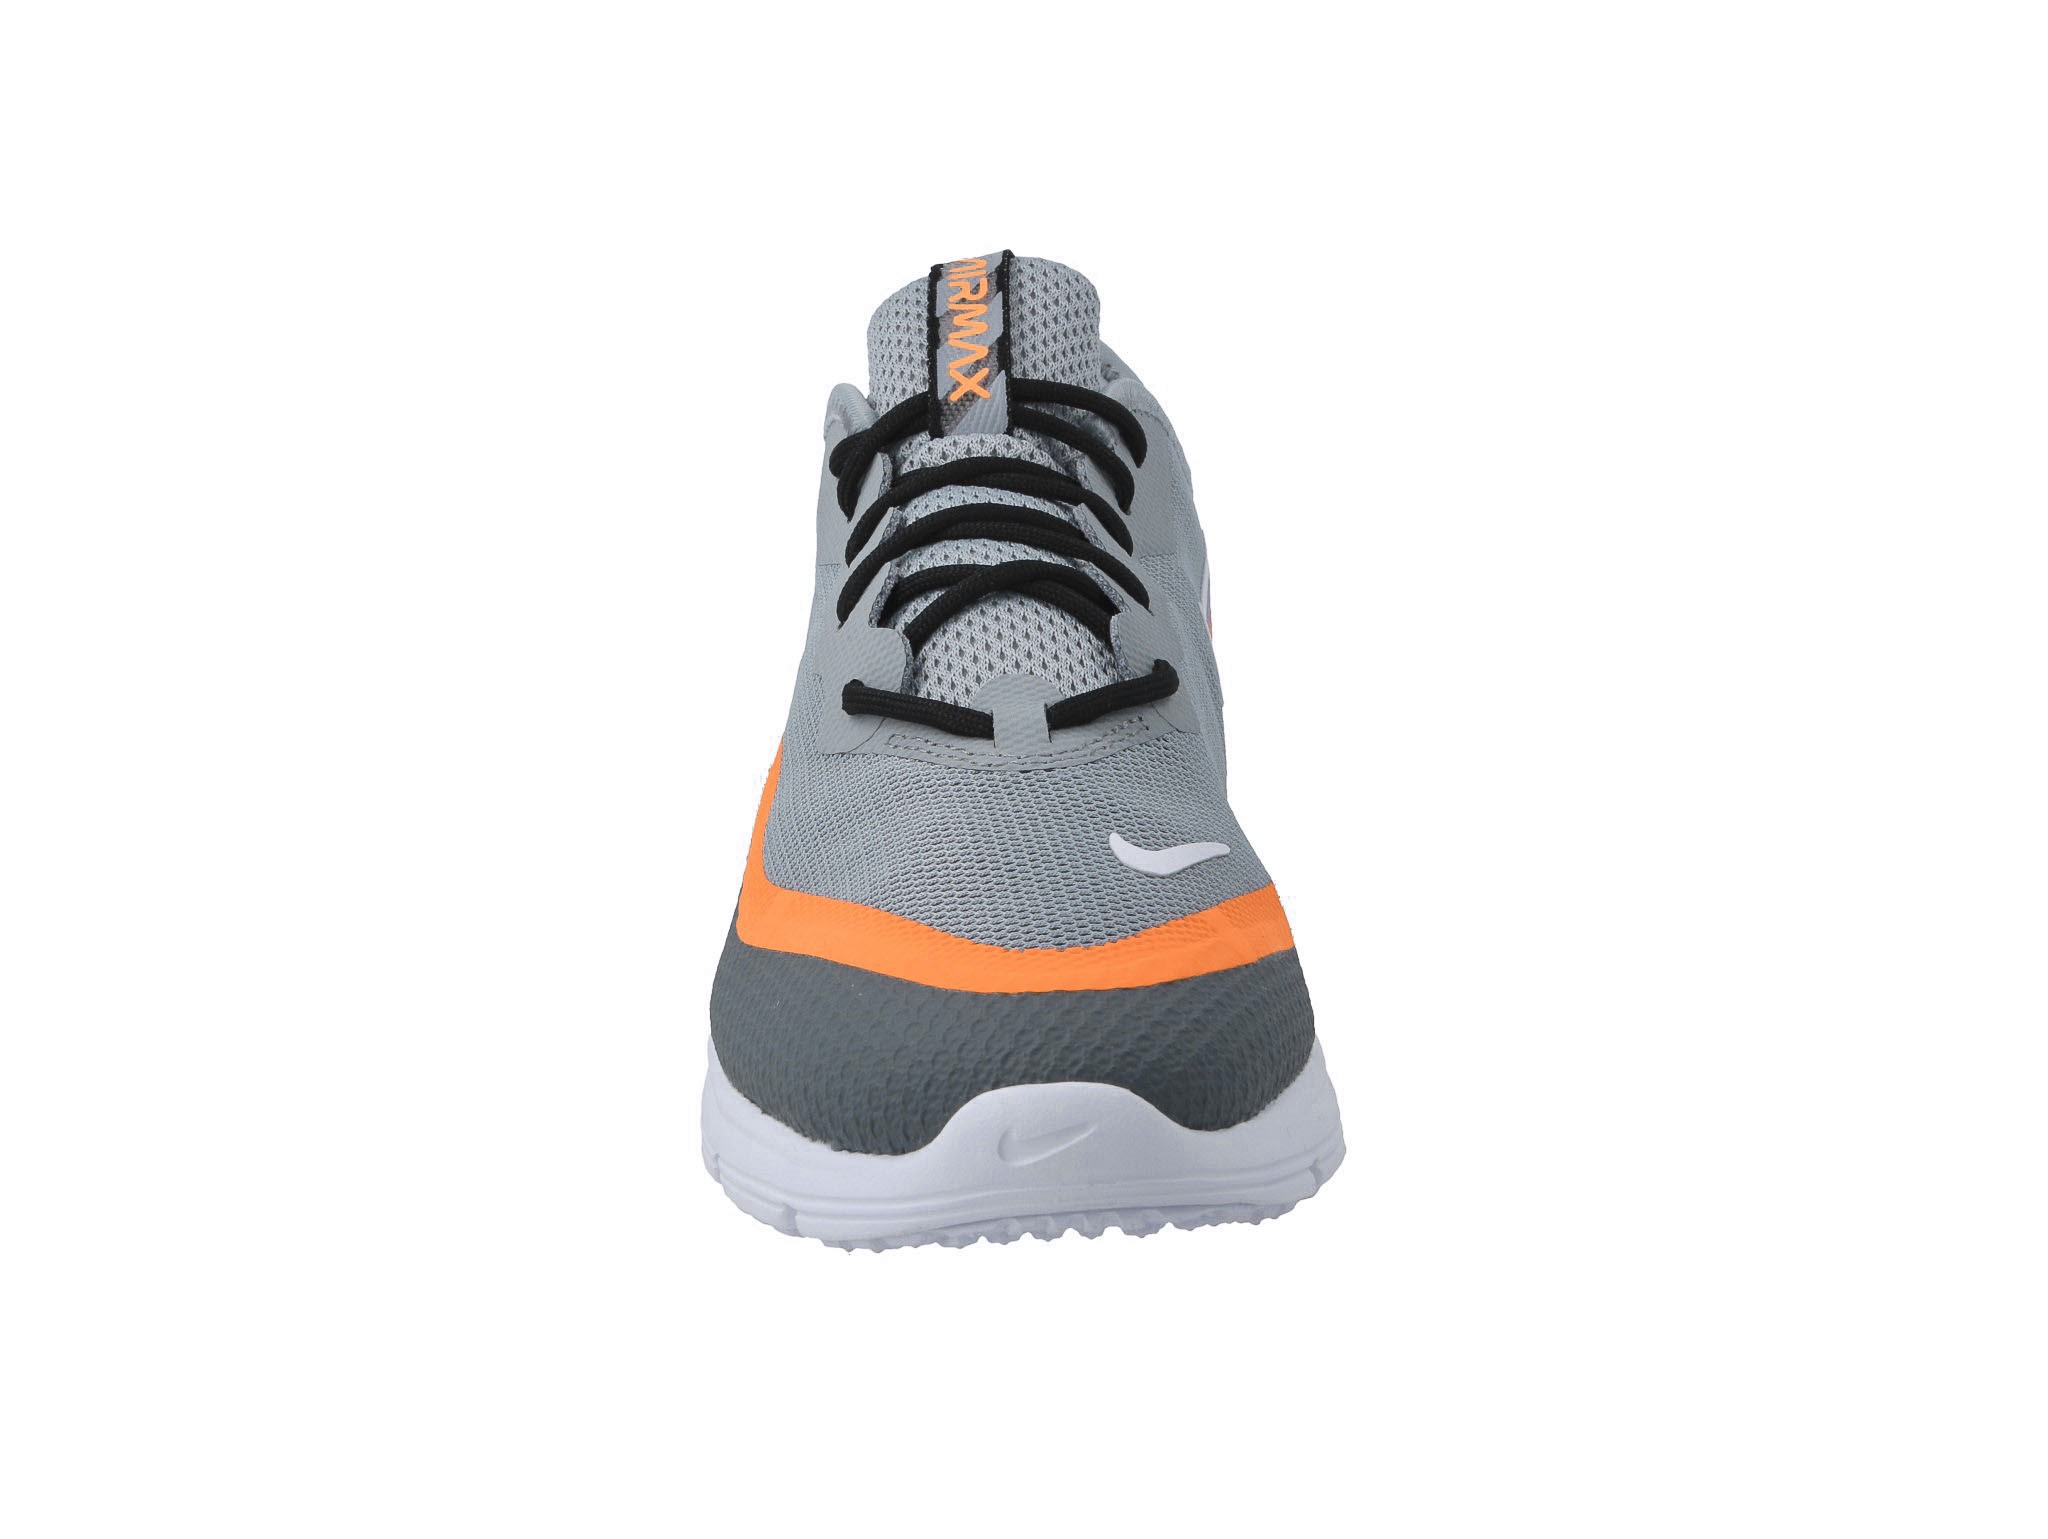 Air Max Sequent 4.5 Sneaker In 004 Wolf Greywhitegryorange